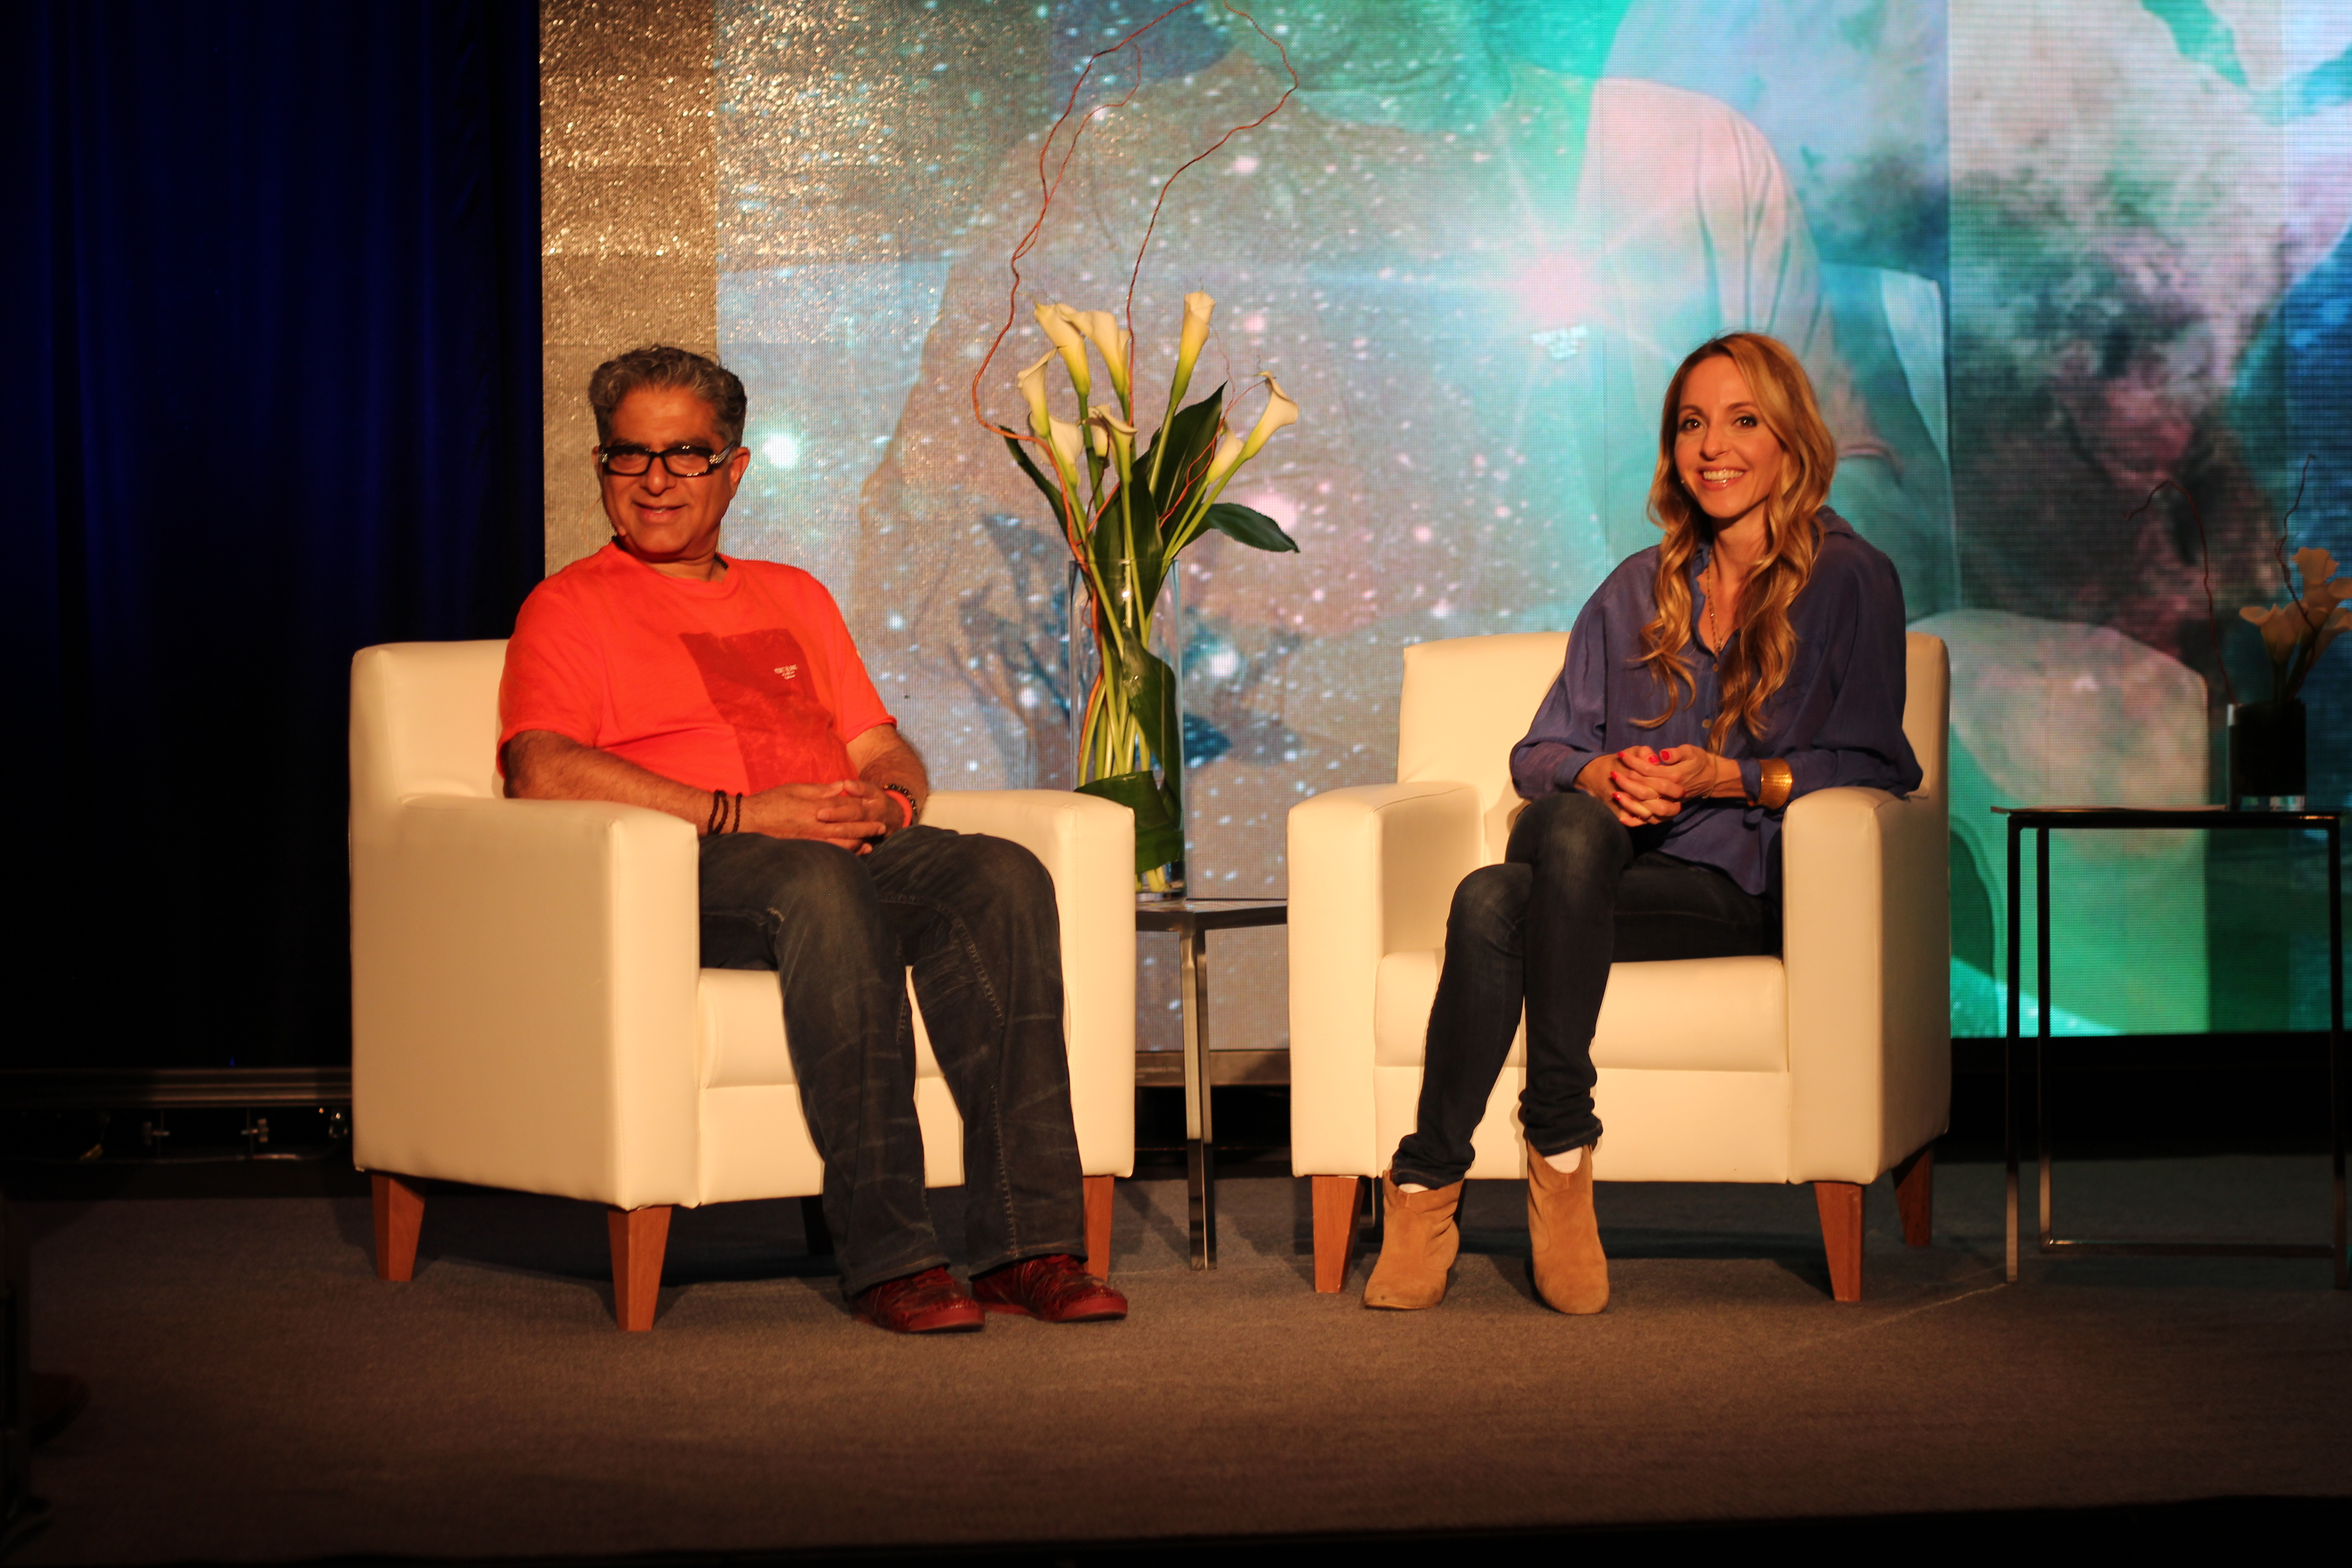 Deepak Chopra and Gabrielle Bernstein at the Global Meditation event in Toronto.